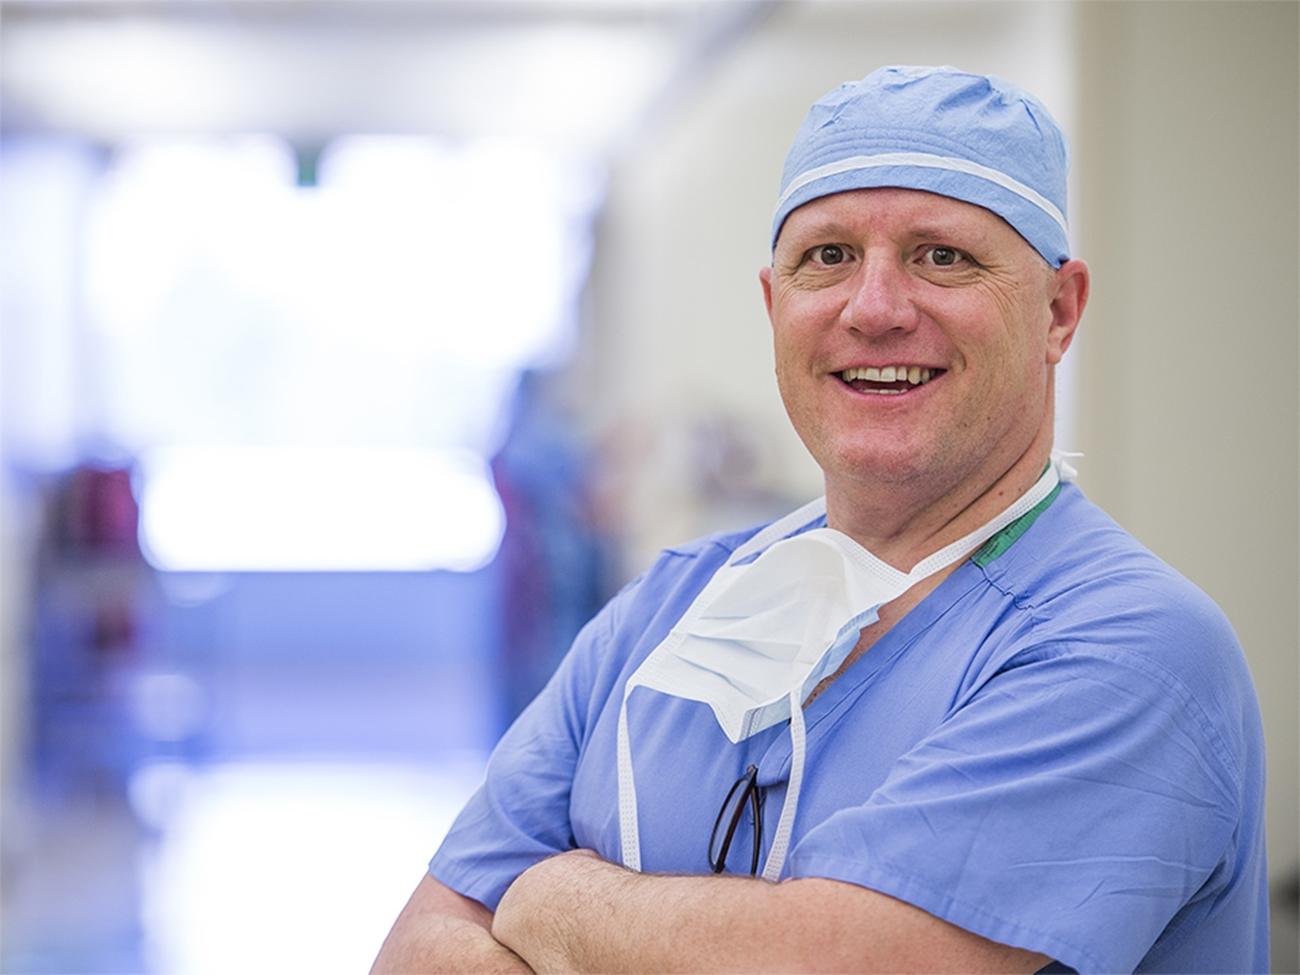 A male doctor wearing blue scrubs has his arms crossed and he's smiling at the camera.